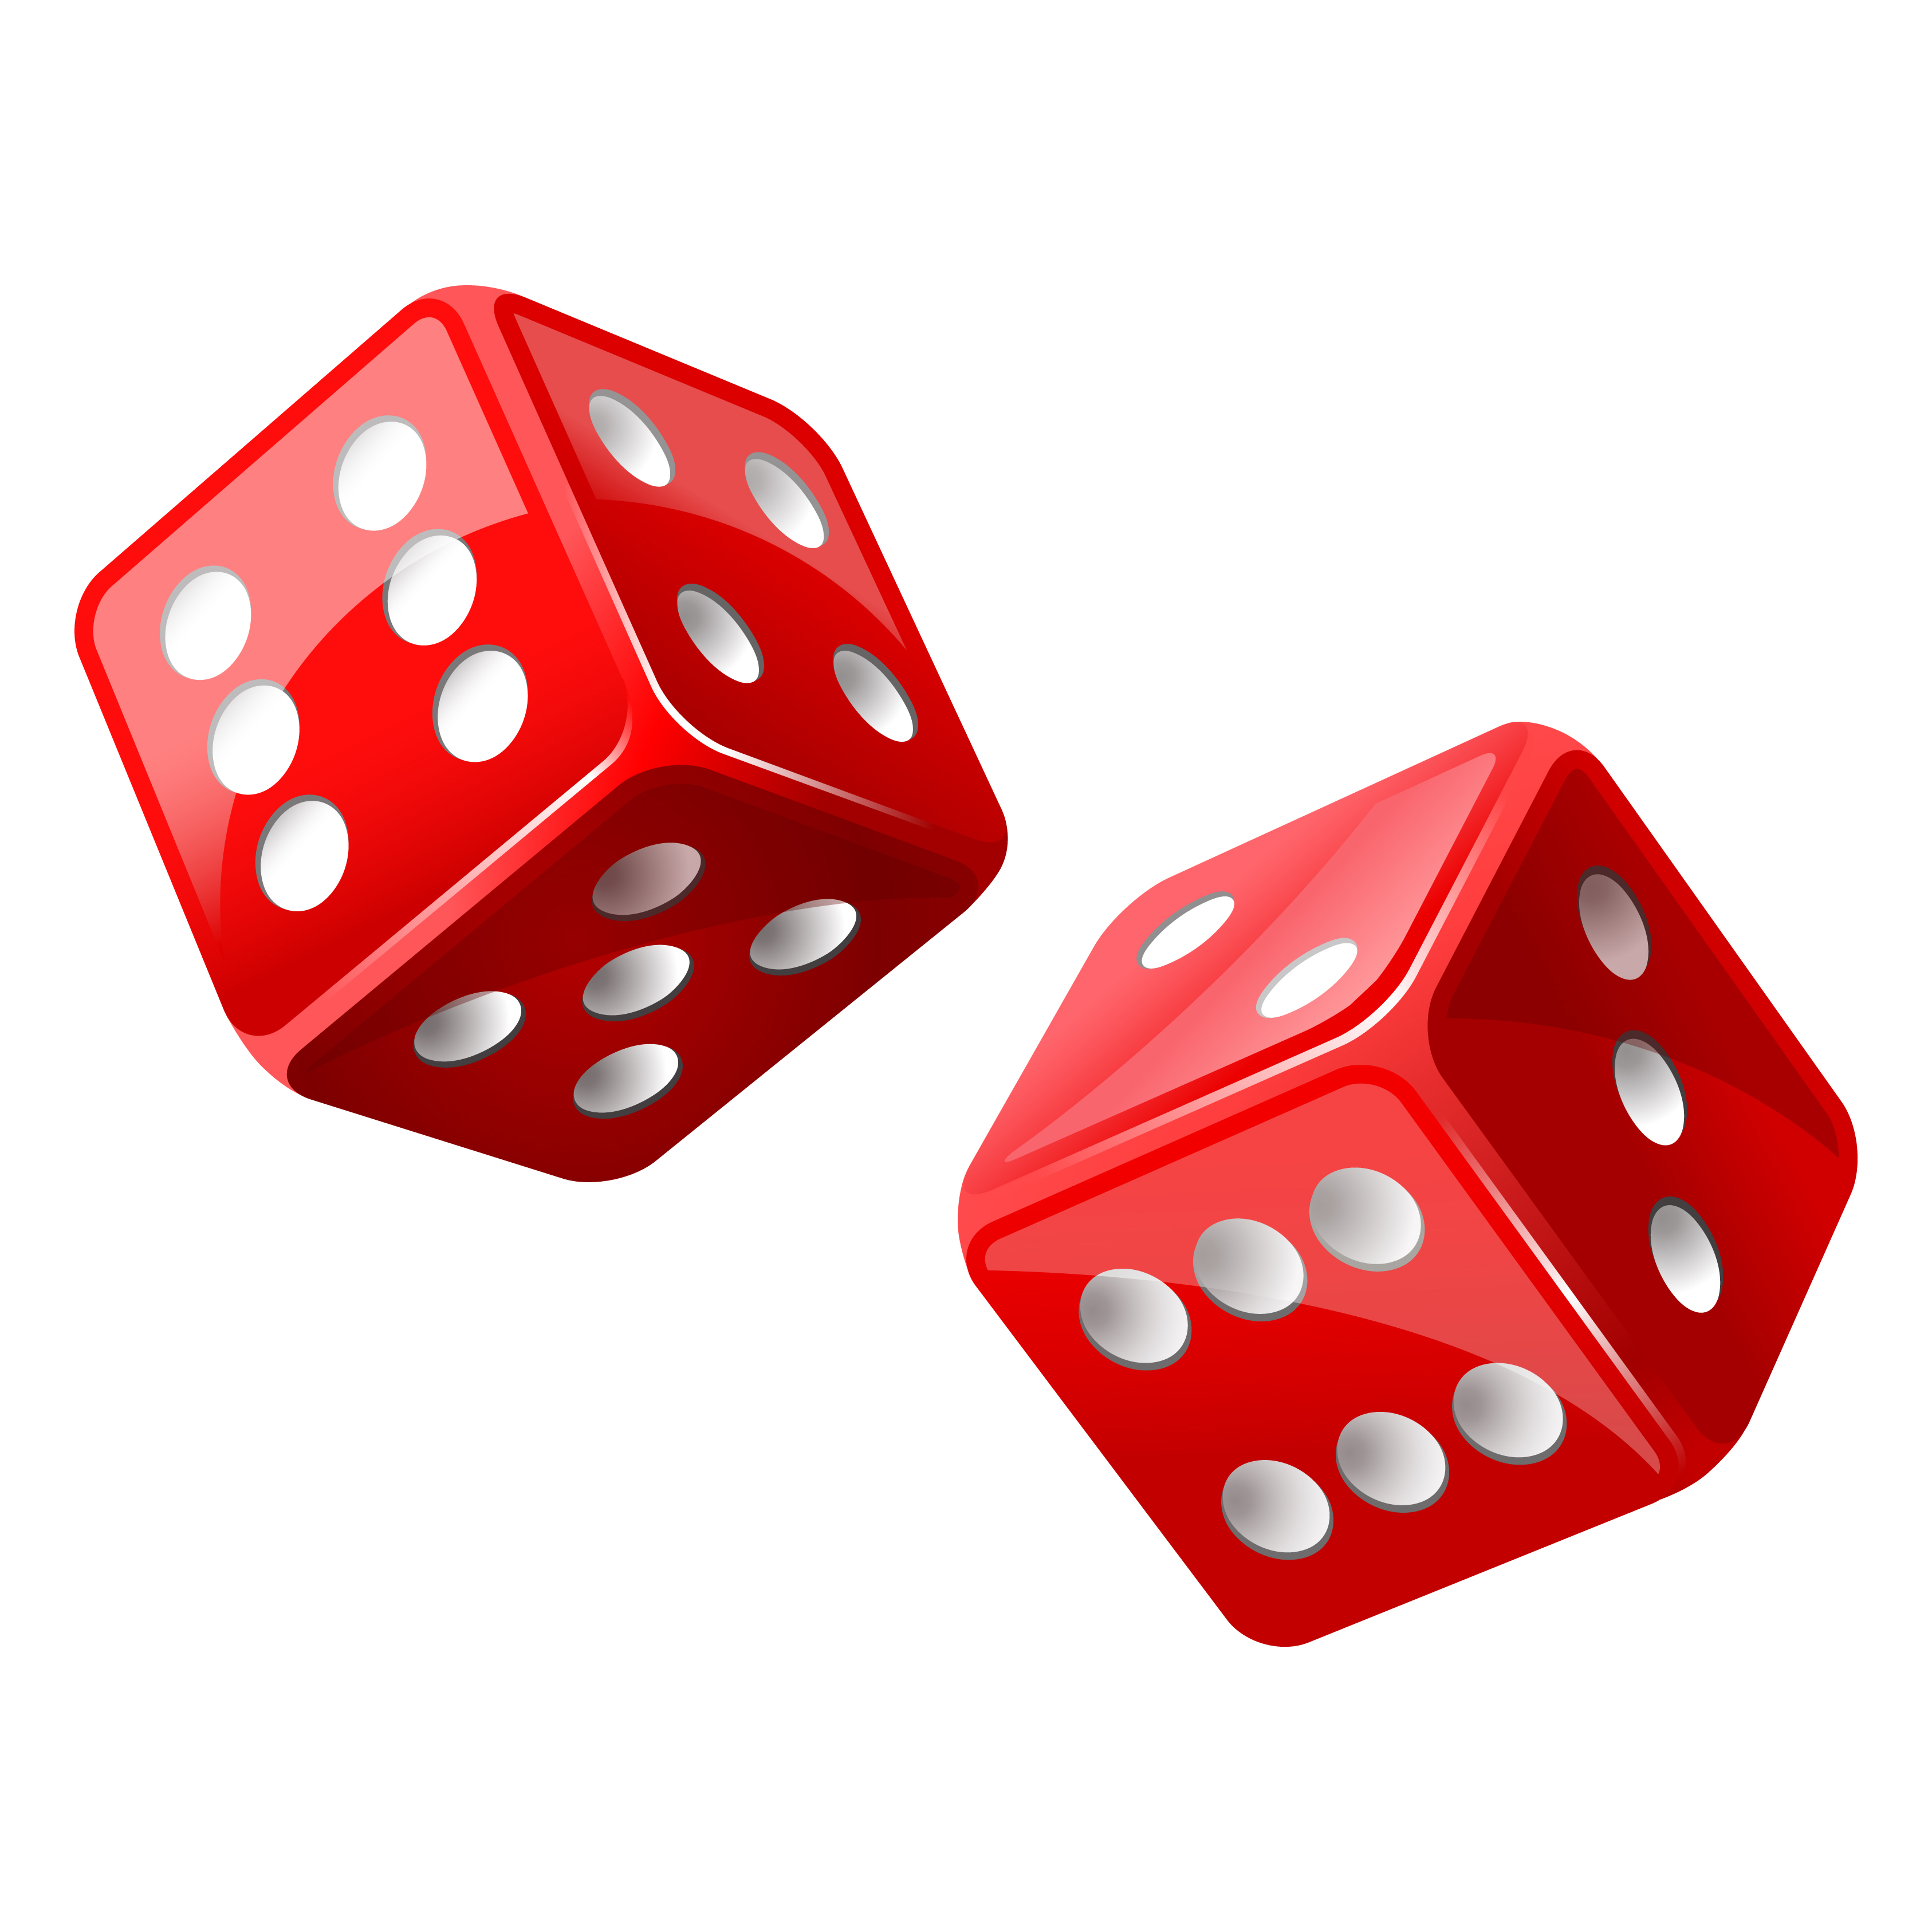 dice clipart red